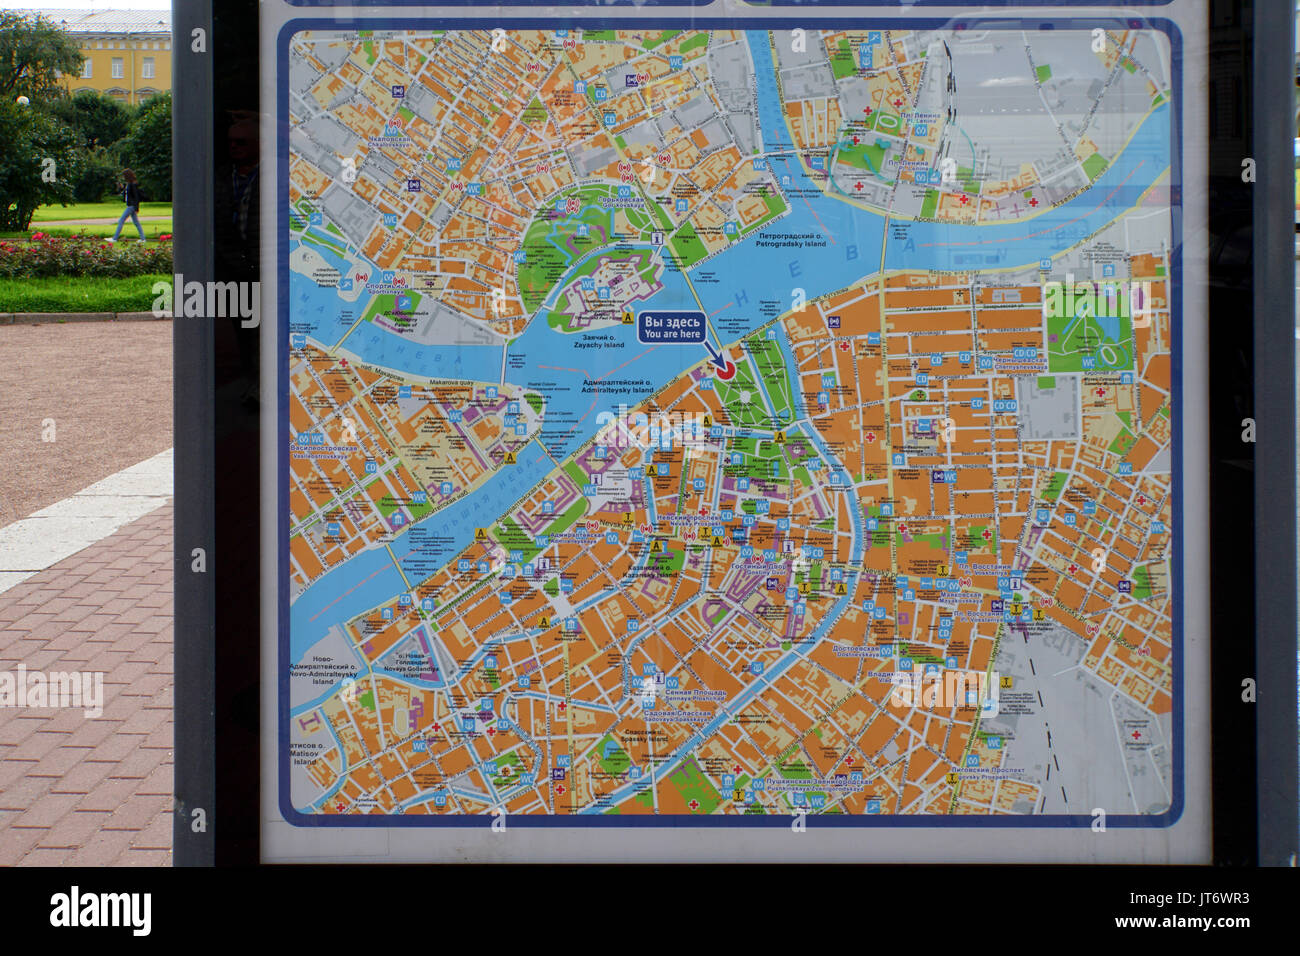 City Tourist Map Of Saint Petersburg Russia Stock Photo 152586647